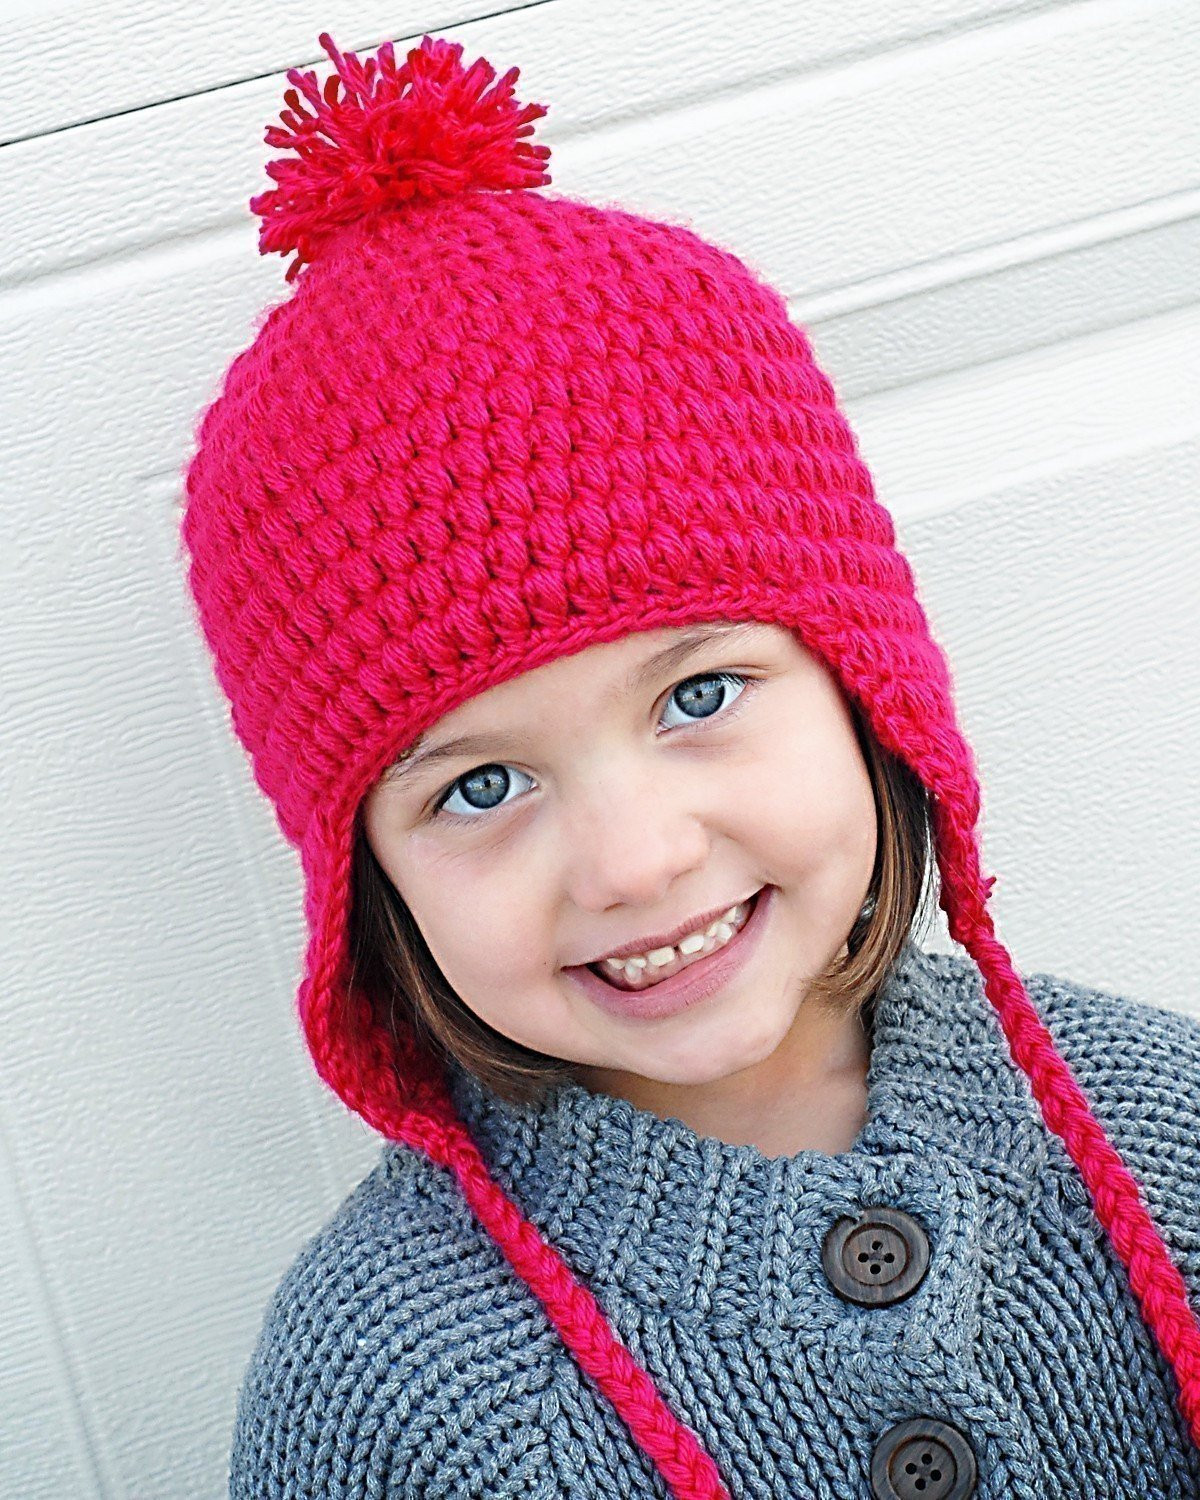 Inspirational Puffy Earflap Hat Crochet Pattern Instant by Adrienneengar Earflap Hat Crochet Pattern Of Wonderful 43 Images Earflap Hat Crochet Pattern